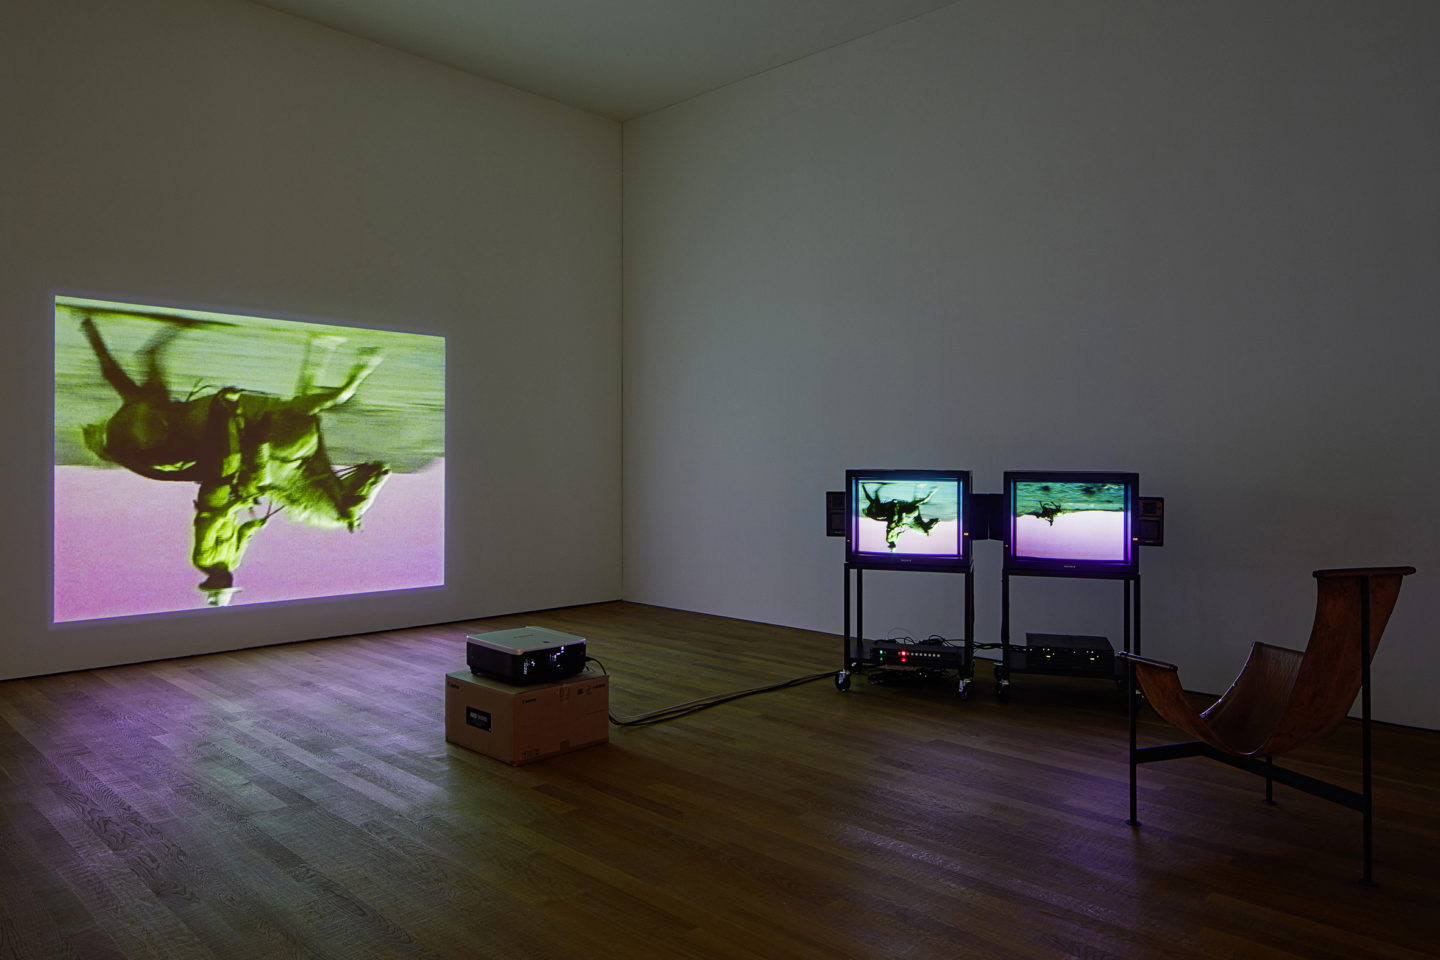 Bruce Nauman: Disappearing Acts, 17 March–26 August 2018, Schaulager® Münchenstein/Basel, installation view with Bruce Nauman, Green Horses, 1988, Two-channel video installation (color, sound), one projection, two monitors, and chair, 59:40 min., continuous play, Purchased jointly by the Albright-Knox Art Gallery, Buffalo, New York, with funds from the Bequest of Arthur B. Michael, by exchange; and the Whitney Museum of American Art, New York, with funds from the Director's Discretionary Fund and the Painting and Sculpture Committee, 2007, © Bruce Nauman / 2018, ProLitteris, Zurich, photo: Tom Bisig, Basel